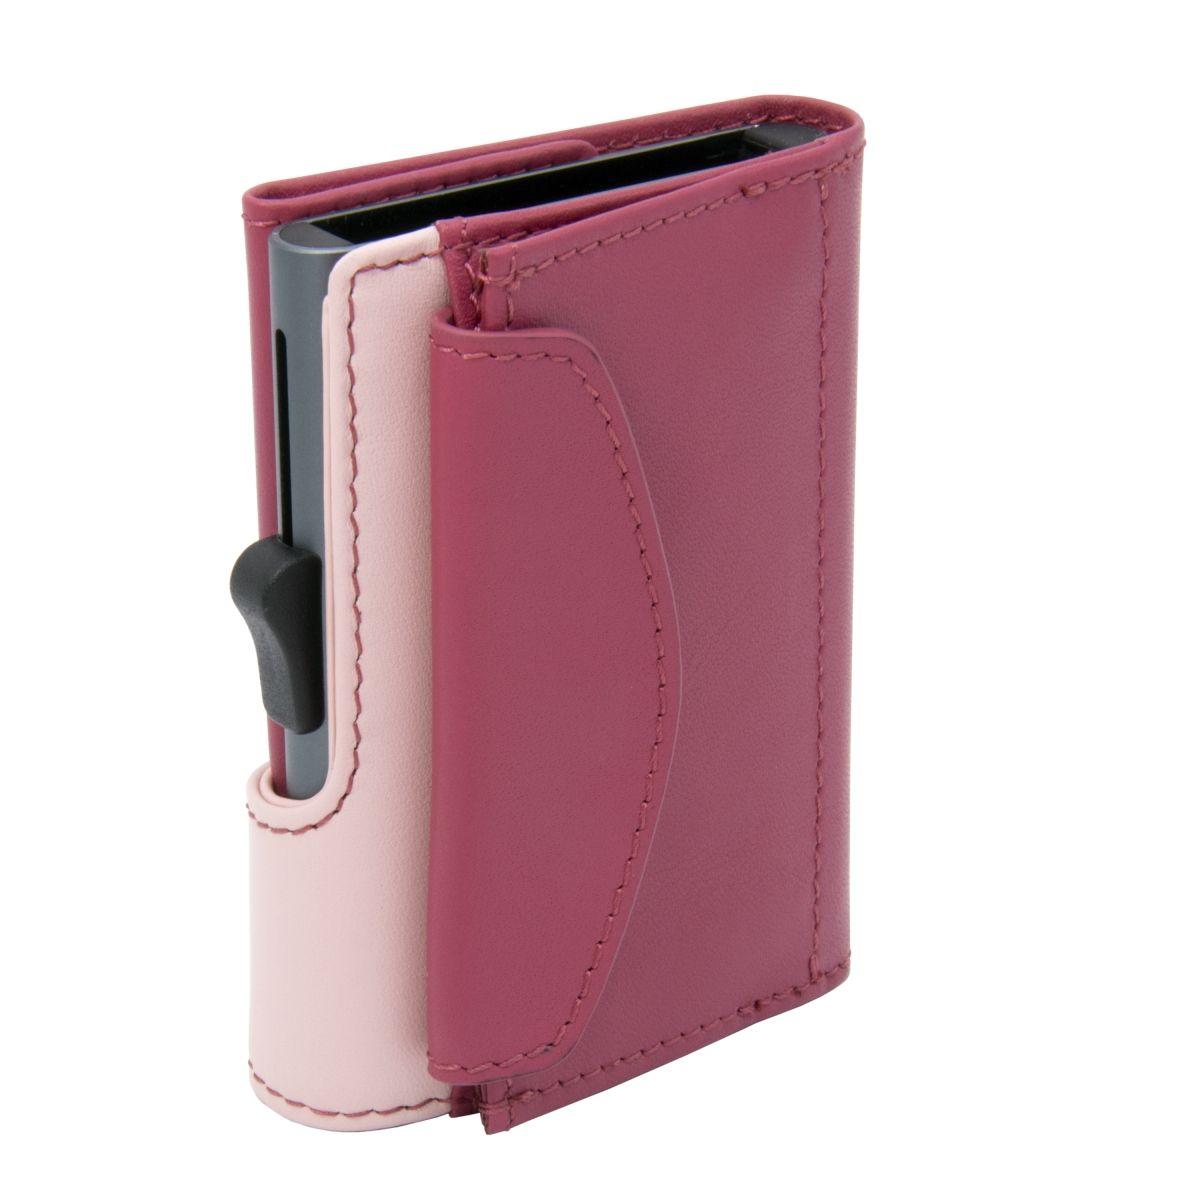 C-Secure XL Aluminum Wallet with Genuine Leather and Coins Pocket - Cherry/Blush